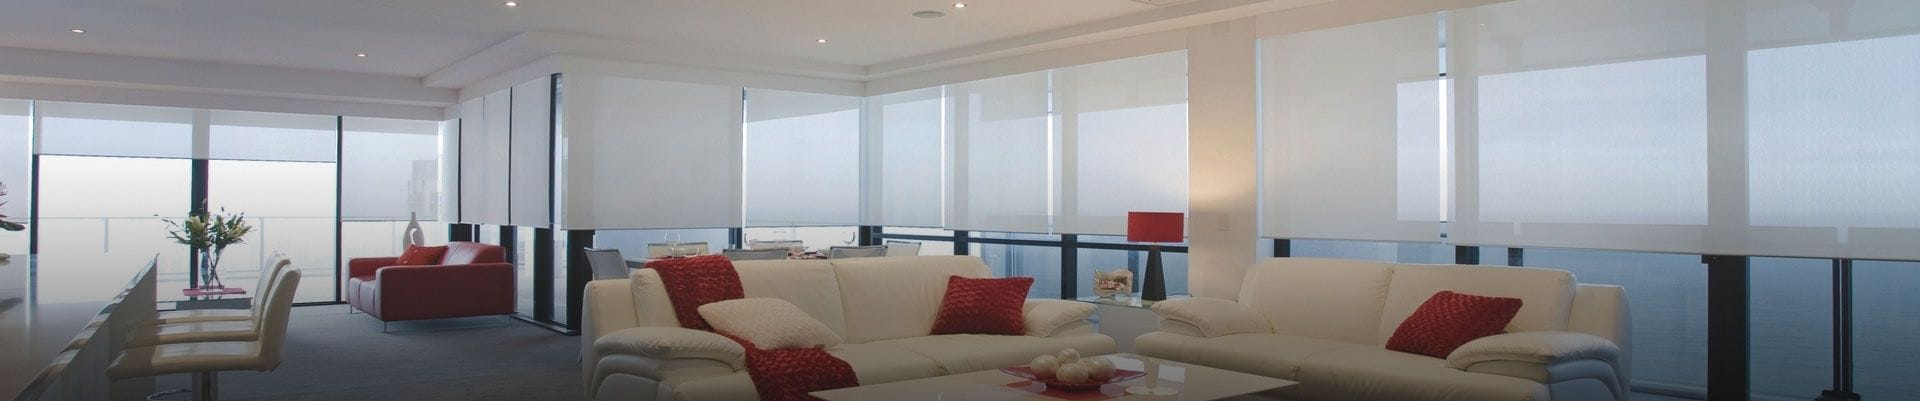 Roller Blinds, Venetian Blinds, Vertical Blinds, Roman Blinds Gold Coast